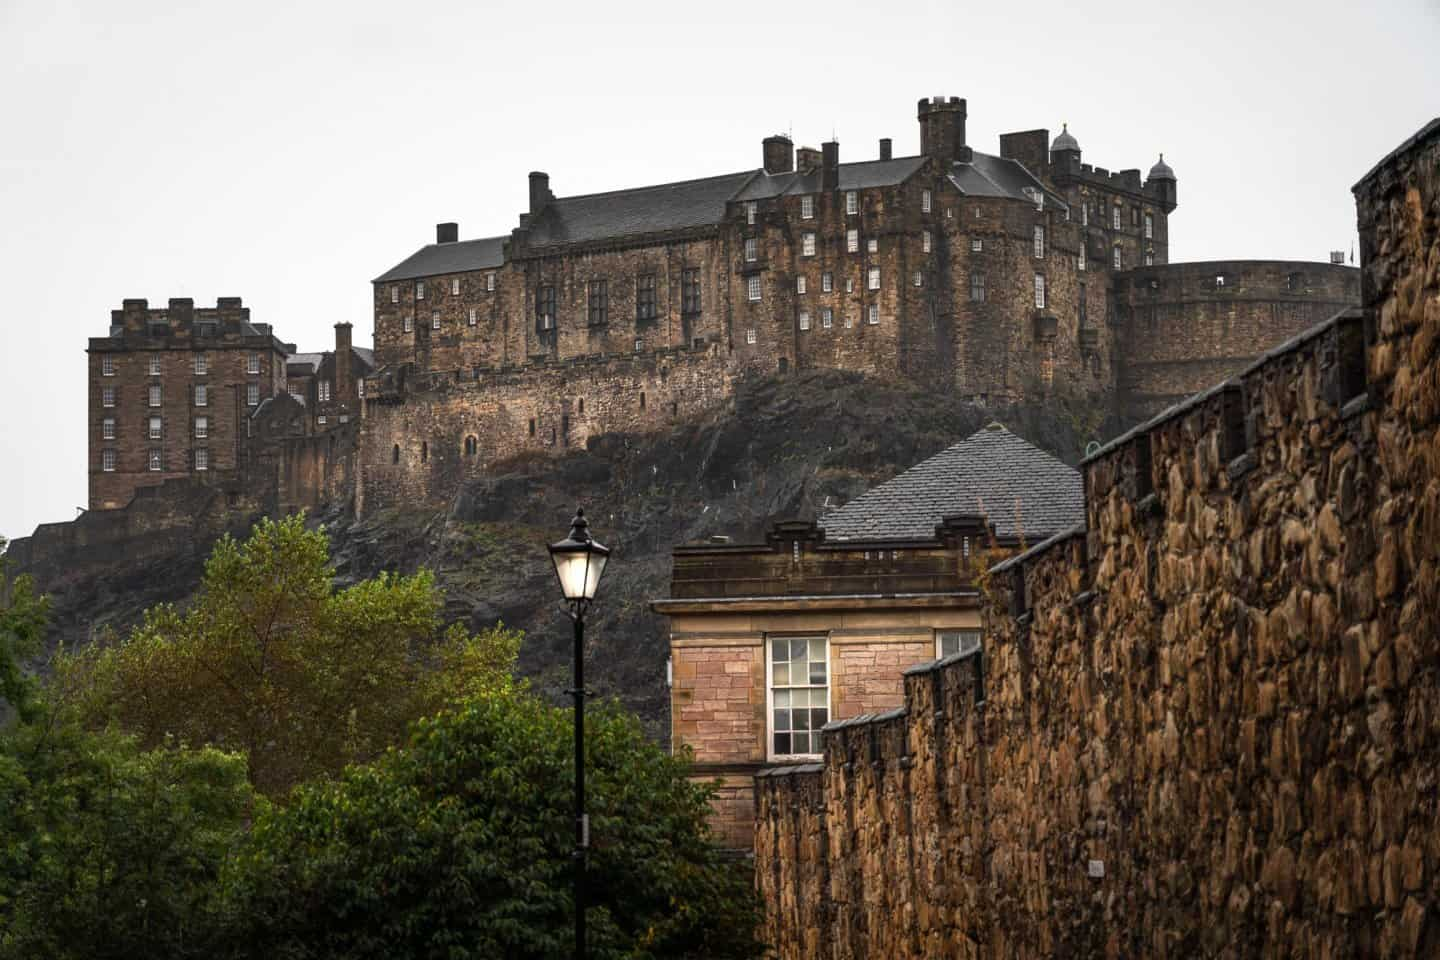 If you have extra time before or after your Isle of Skye 2 day tour from Edinburgh, be sure to check out the Edinburgh Castle from Grassmarket.